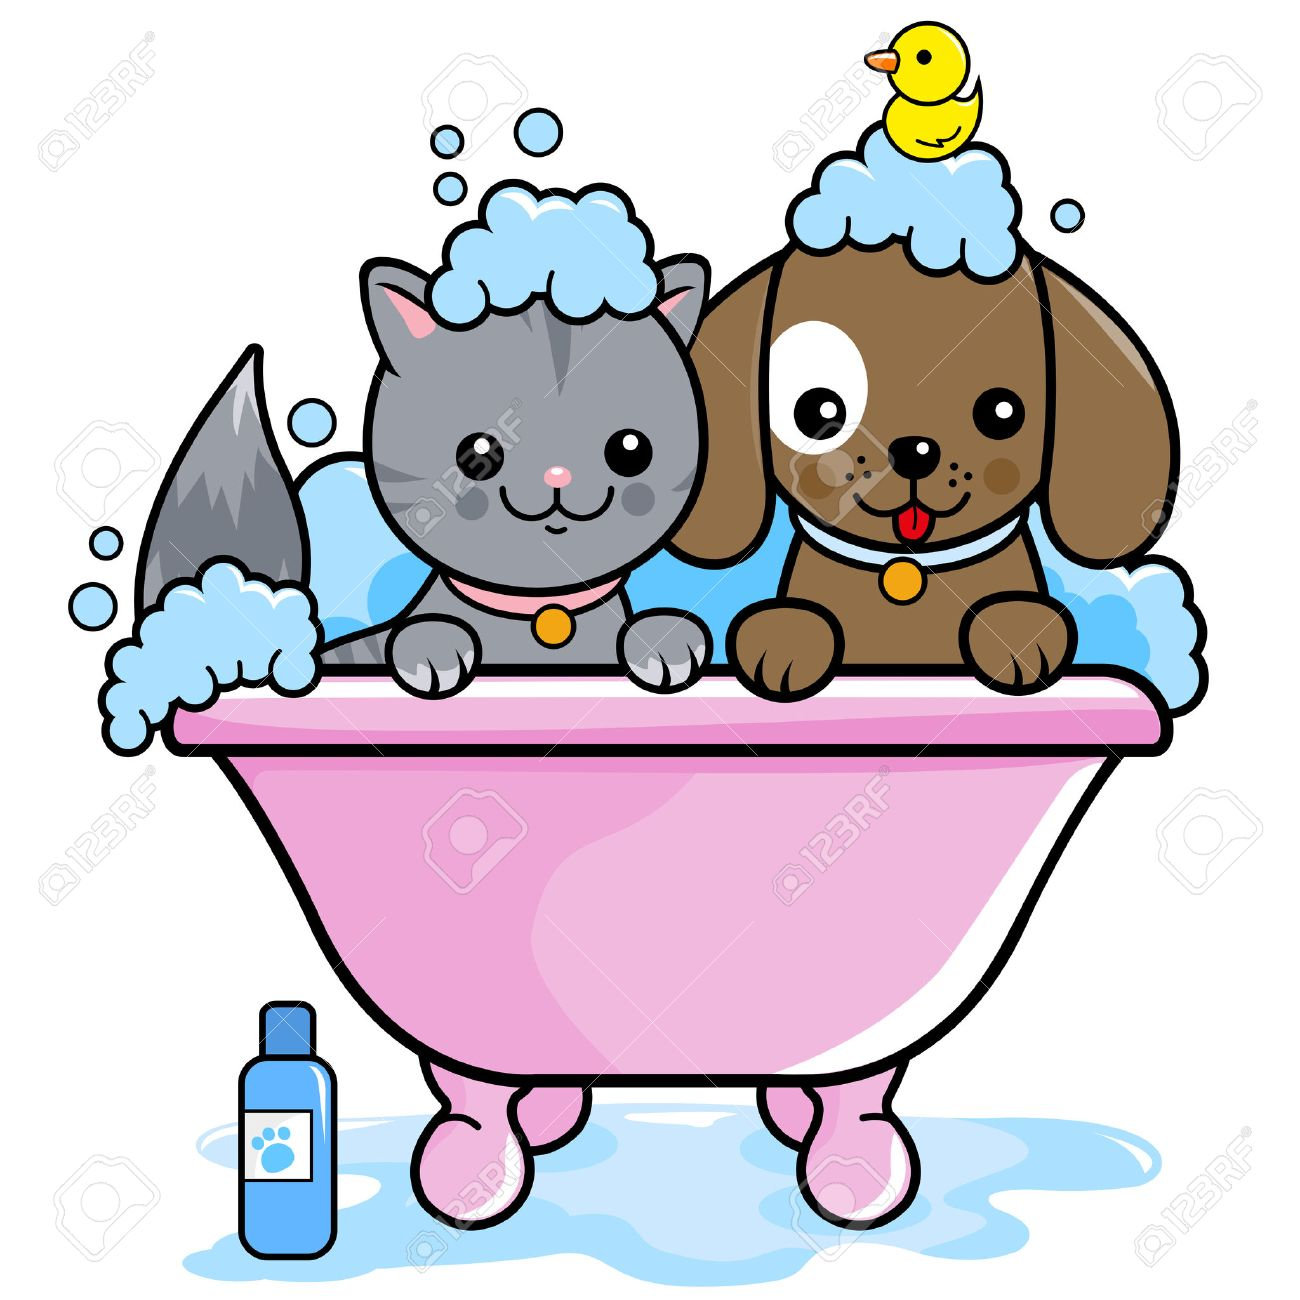 Dog and a cat in a tub taking a bubble bath. - 45529514